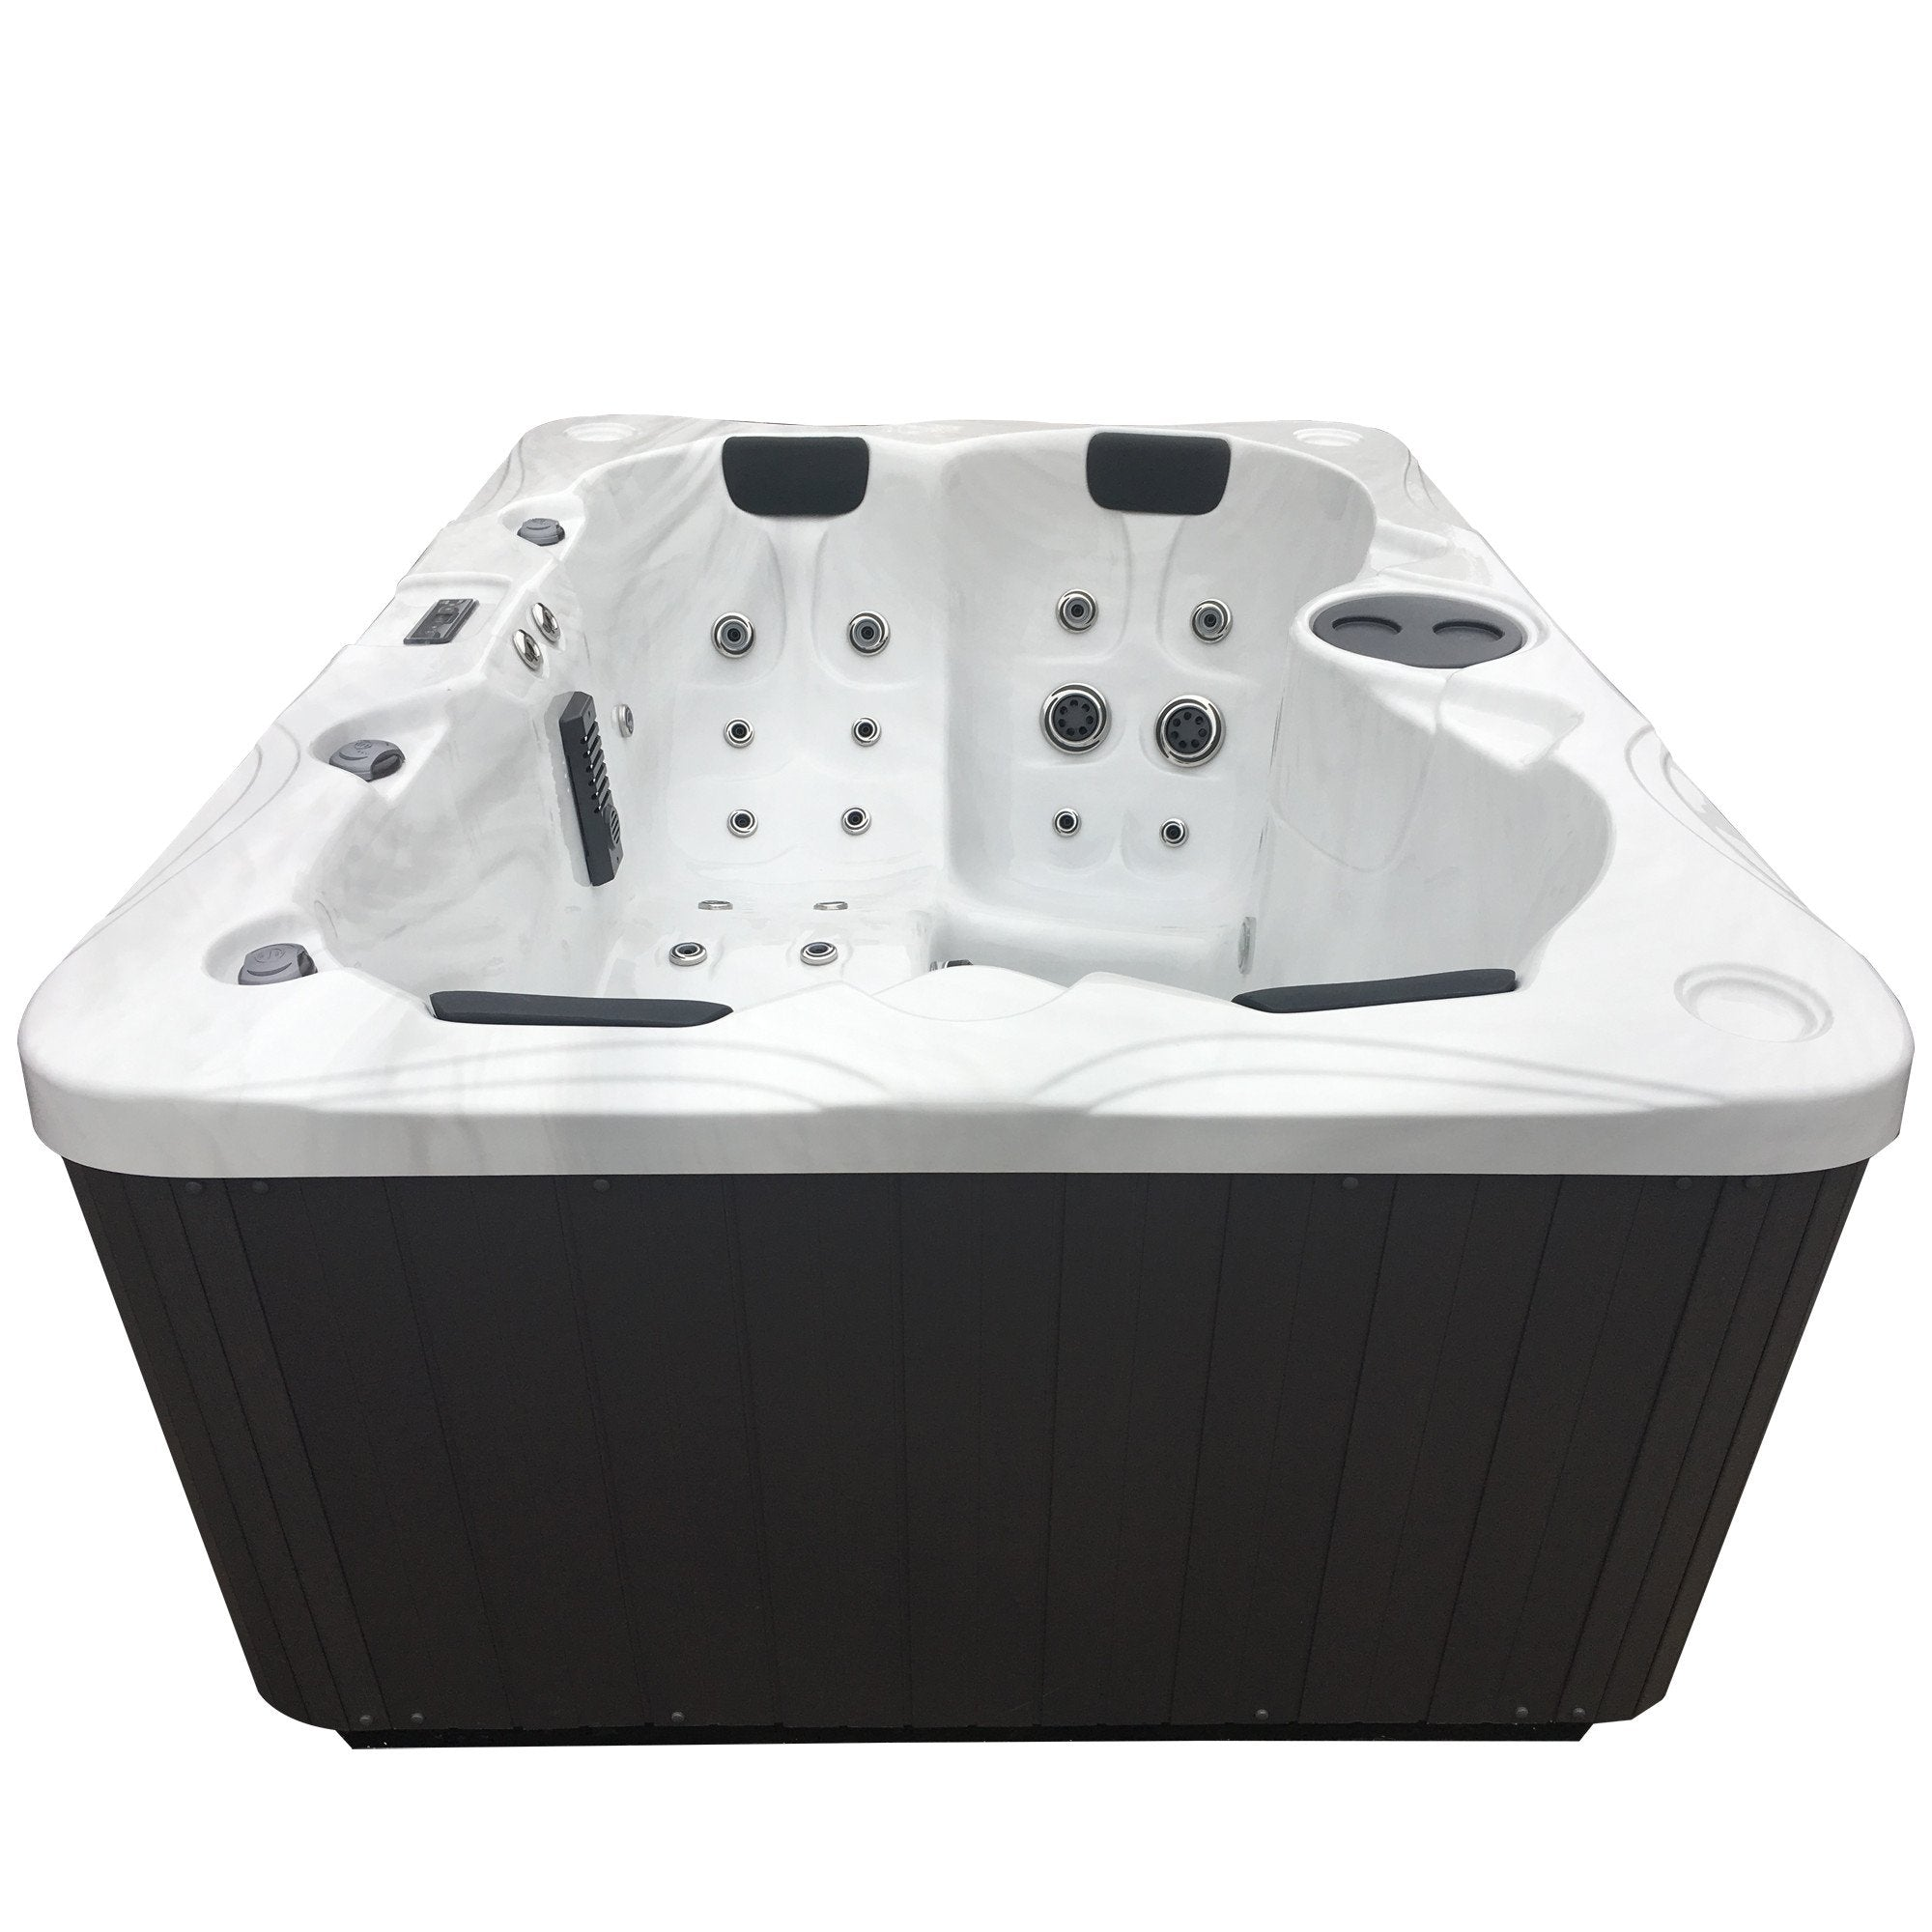 Futura Alexandria 55 Jet 3 Person LED Hot Tub w/ Lounge